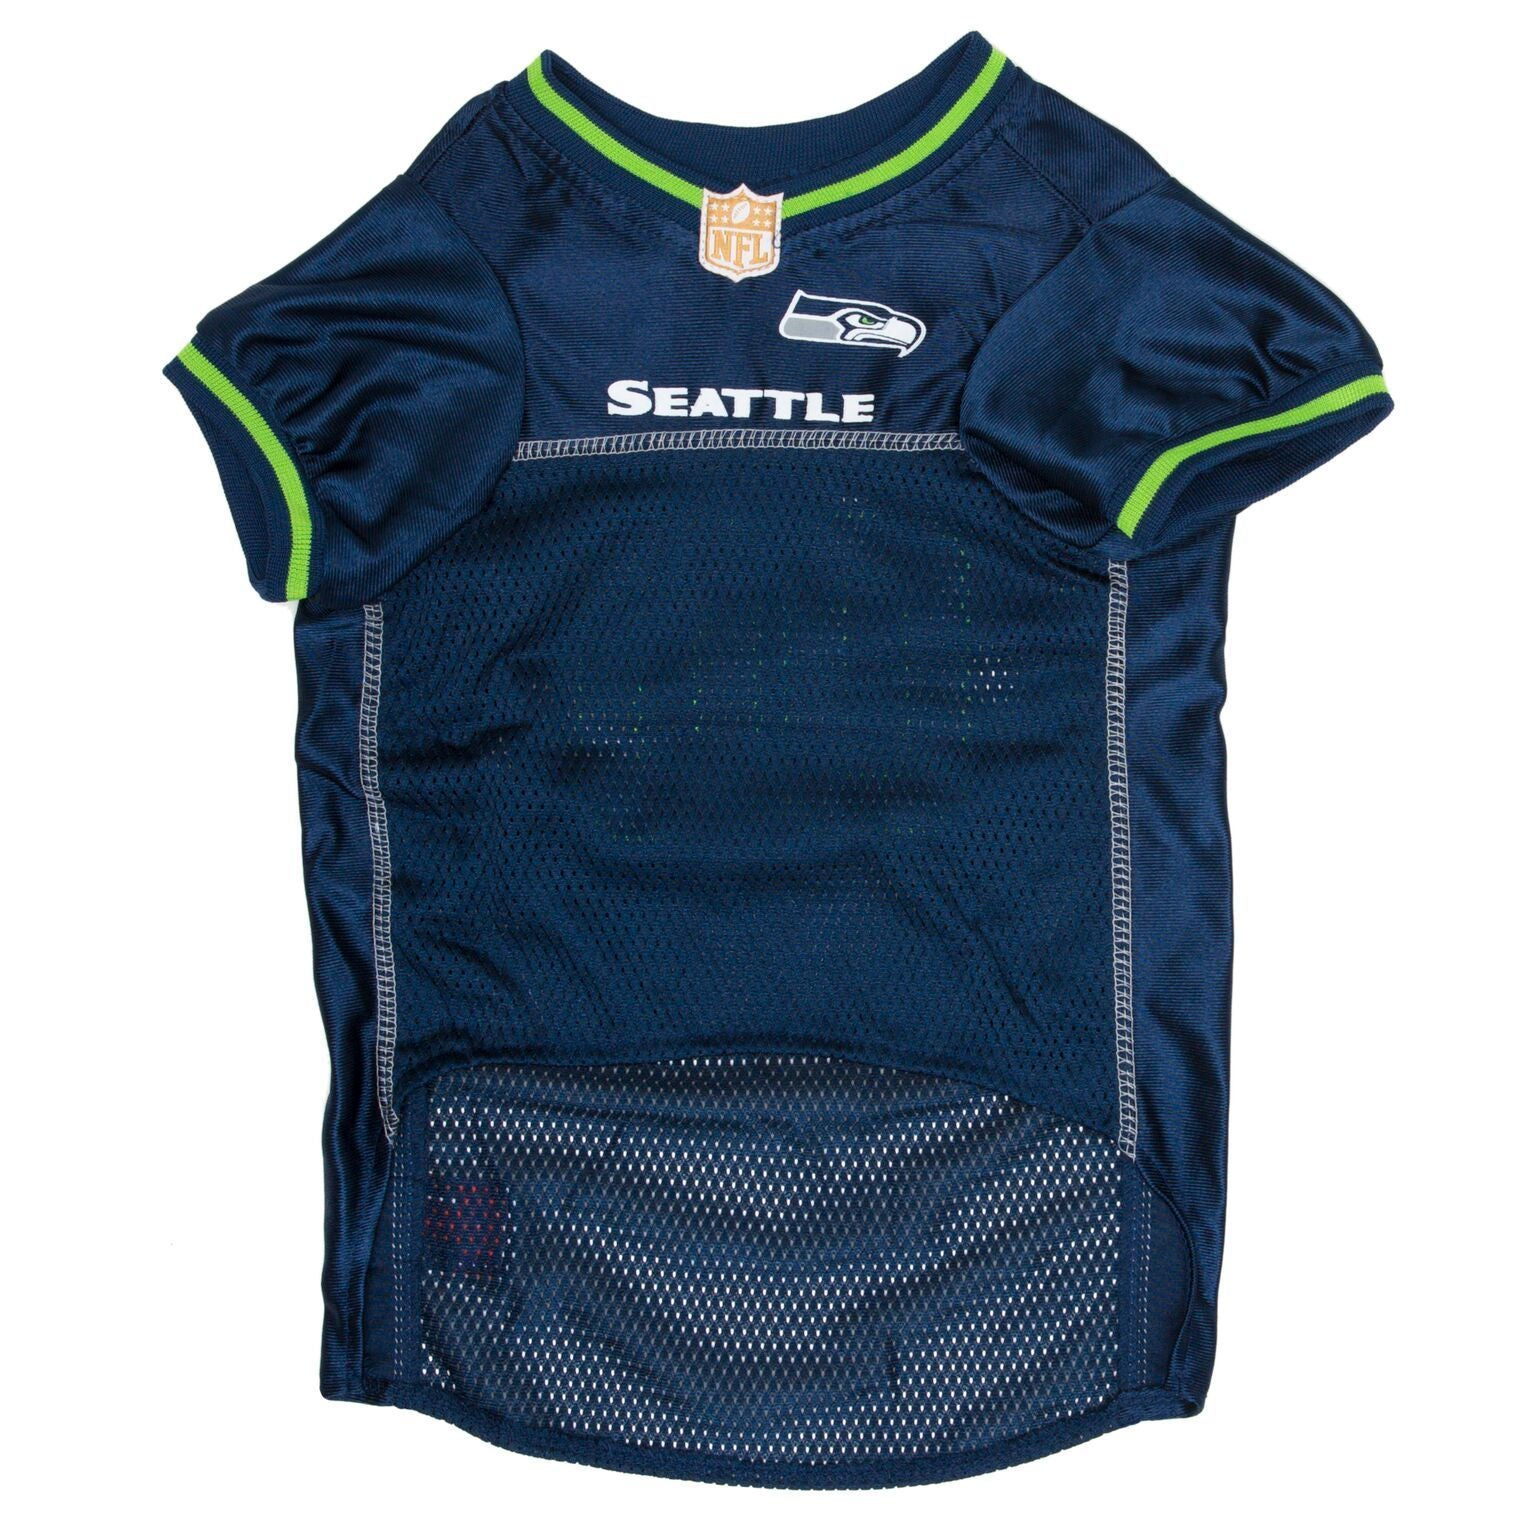 Seattle Seahawks Football Jersey Cheerleading Uniform Collar Leash - Jersey Champs - Custom Basketball, Baseball, Football & Hockey Jerseys